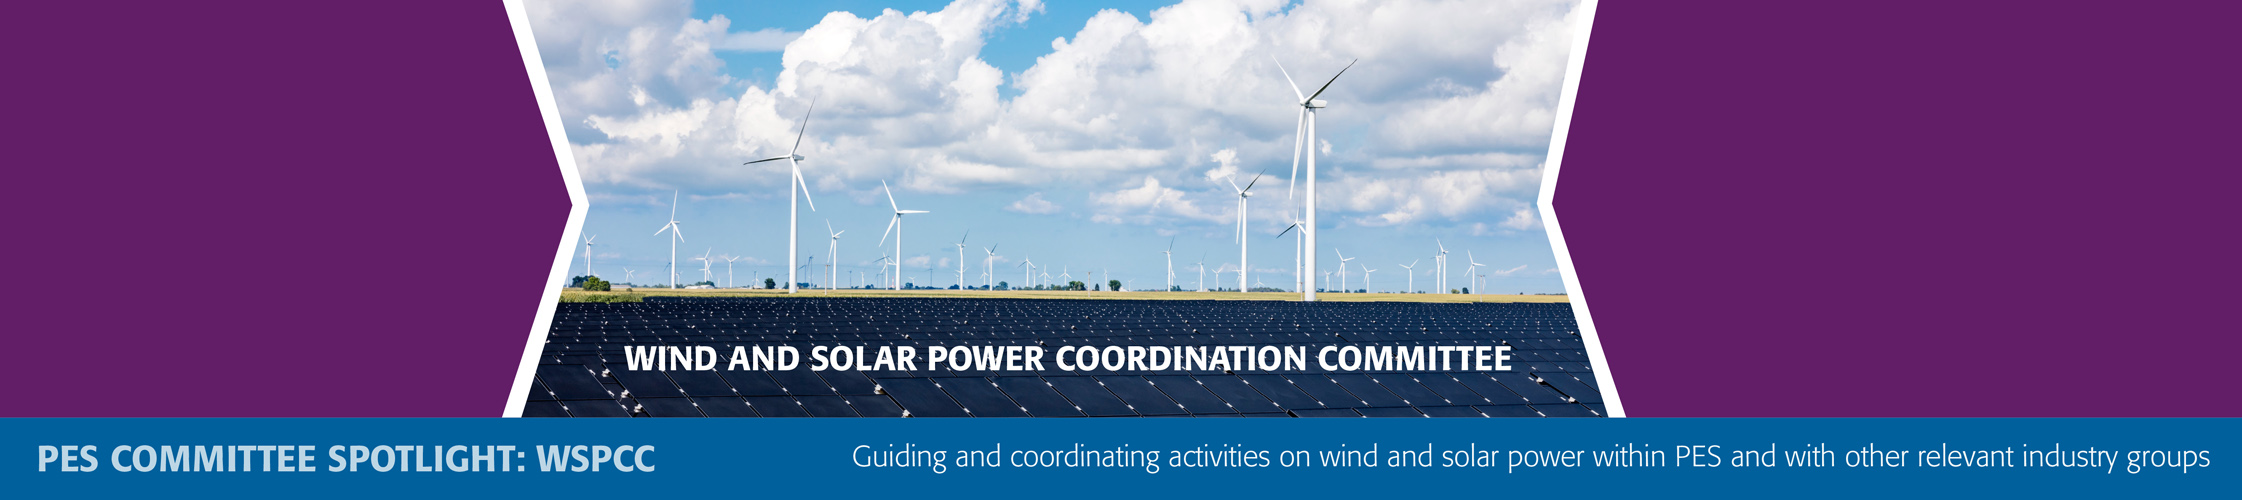 Wind and Solar Power Coordination Committee